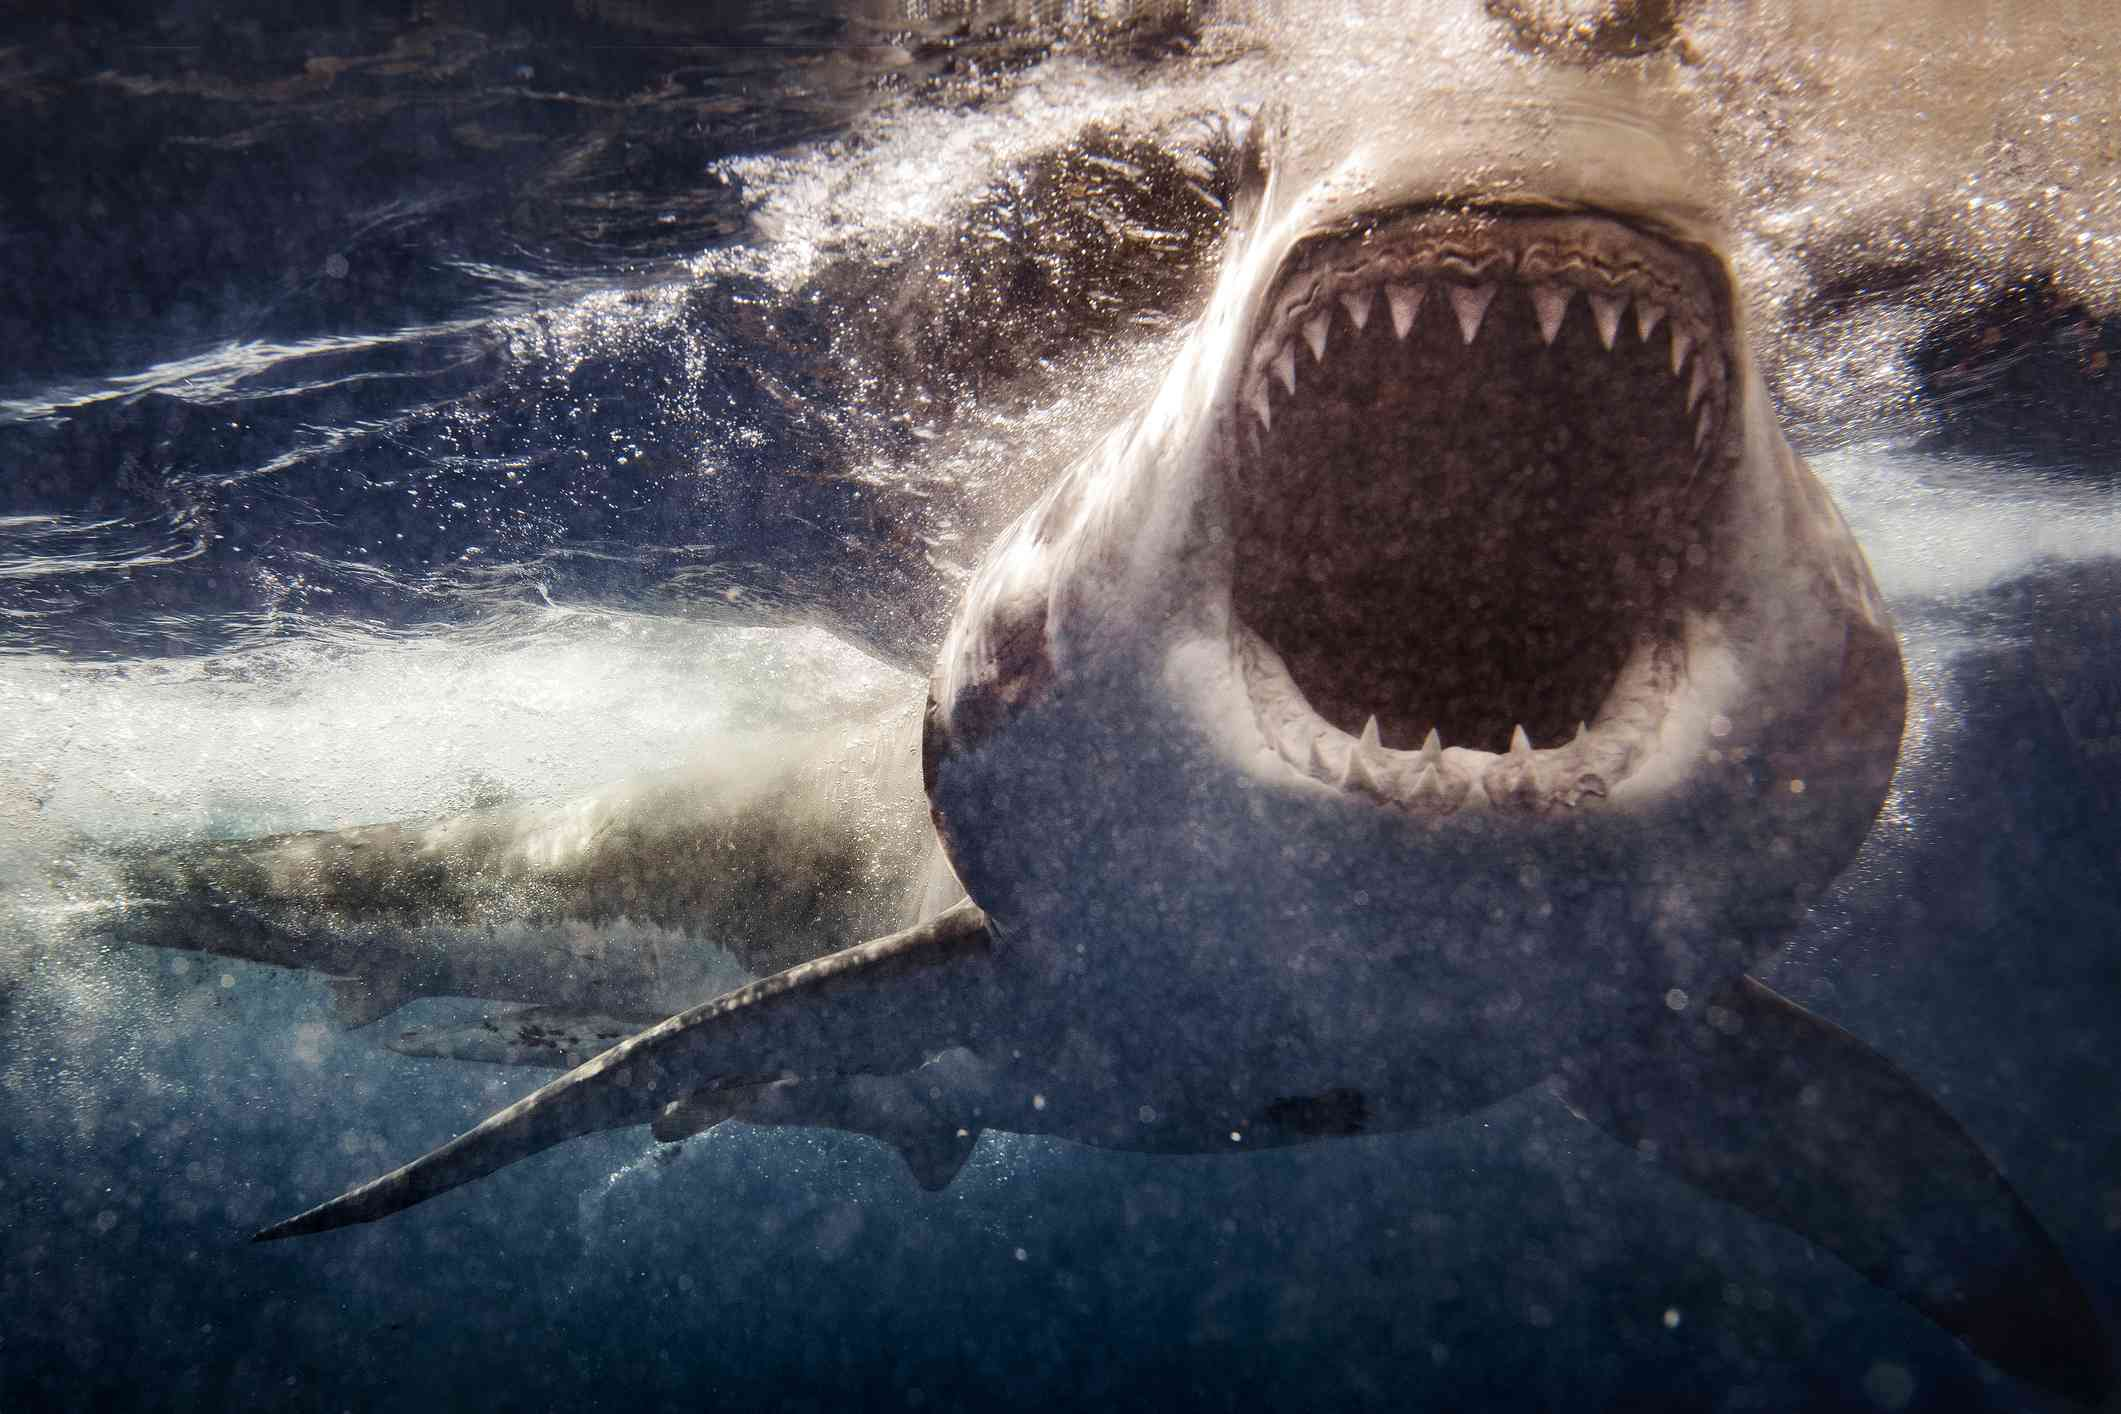 Extreme closeup of a great white shark attacking.